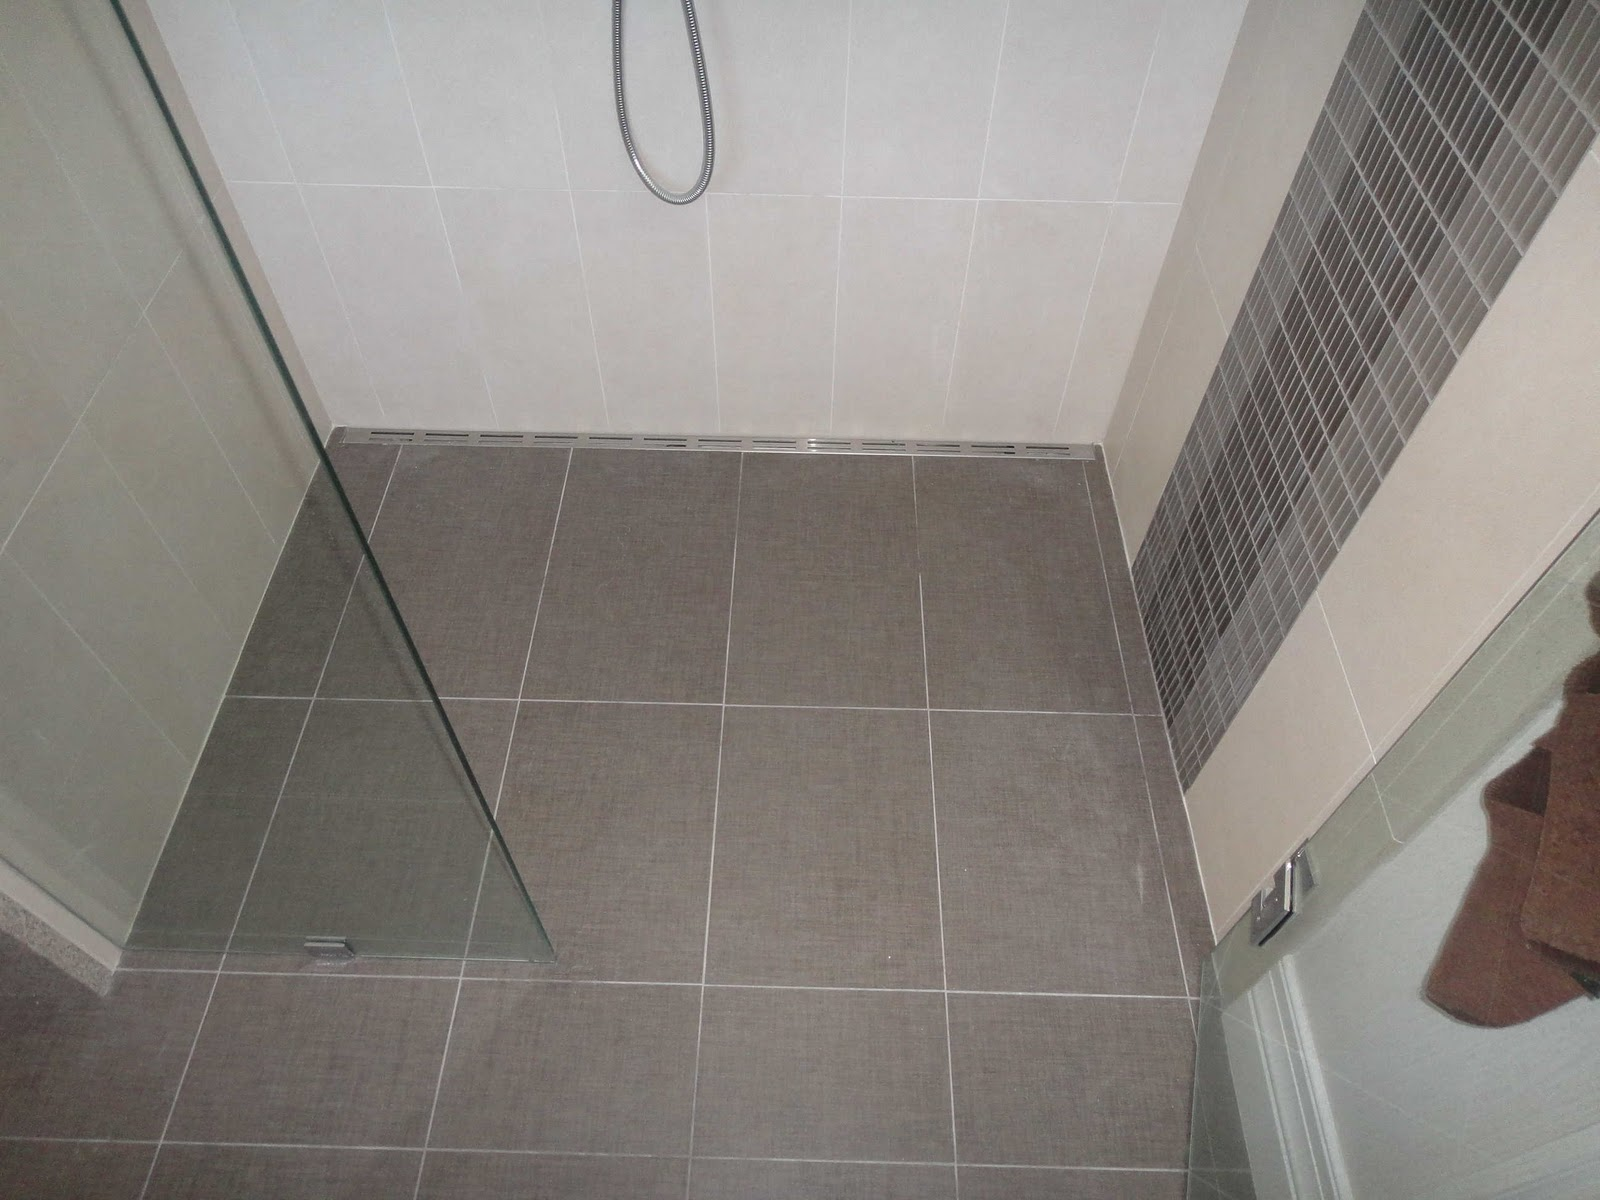 Our Drain Systems Allow You To Eliminate The Barriers And Threshold Of A  Shower, Creating An ADA Shower That Is Universal Design Approved.